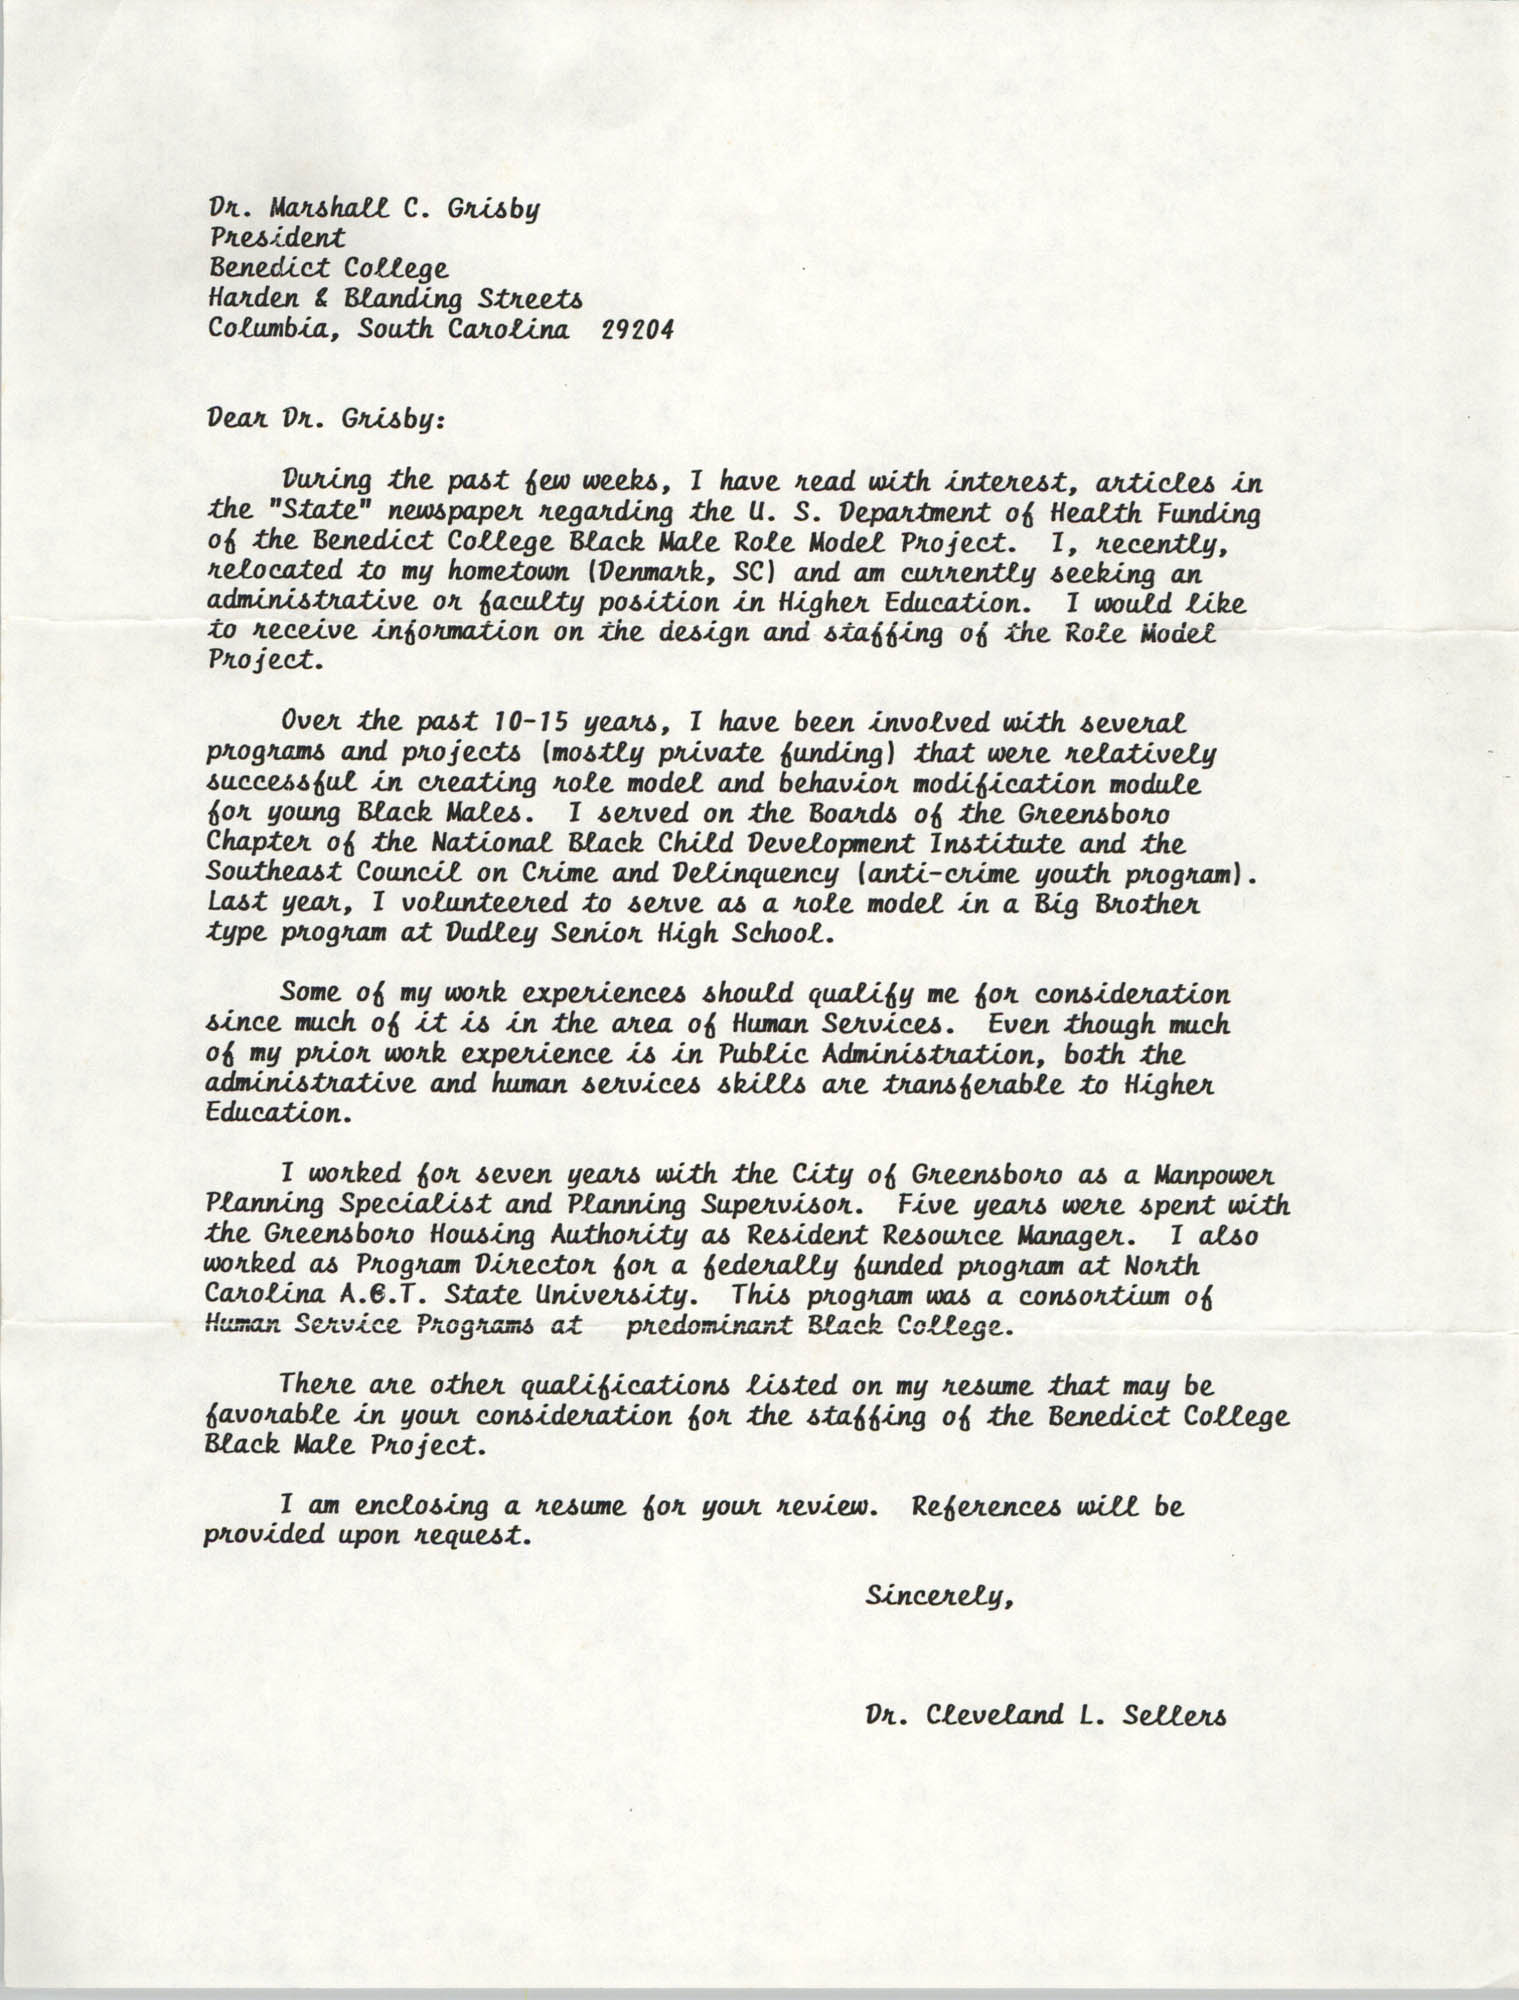 Letter from Cleveland Sellers to Marshall Grisby